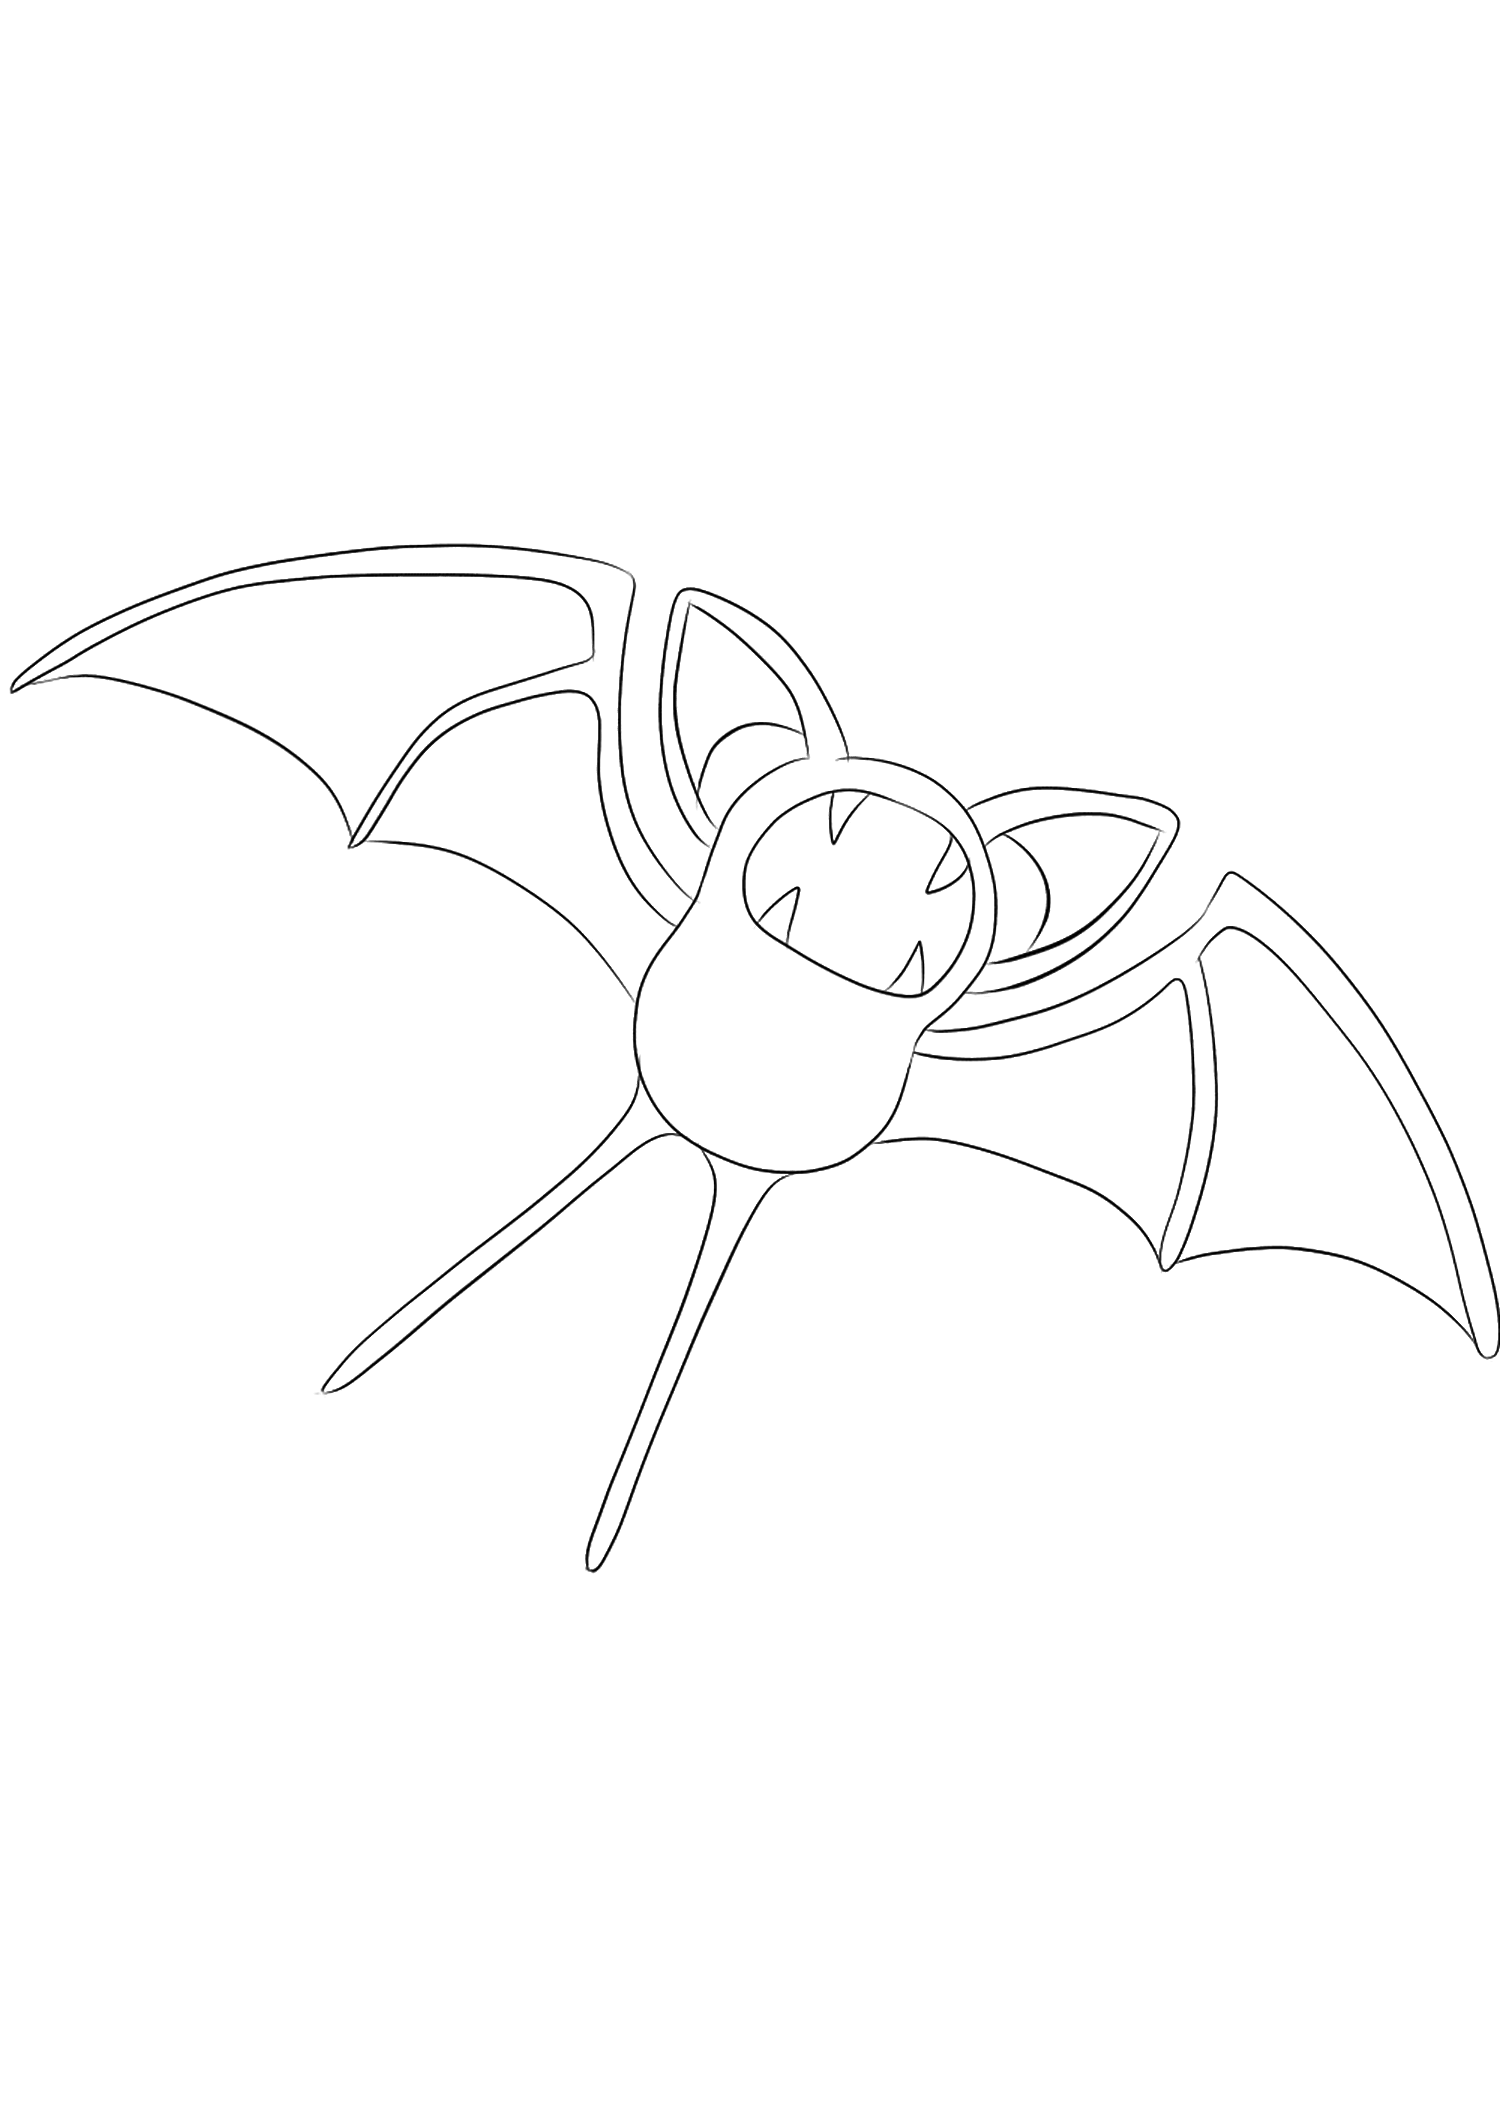 <b>Zubat</b> (No.41) : Pokemon (Generation I)